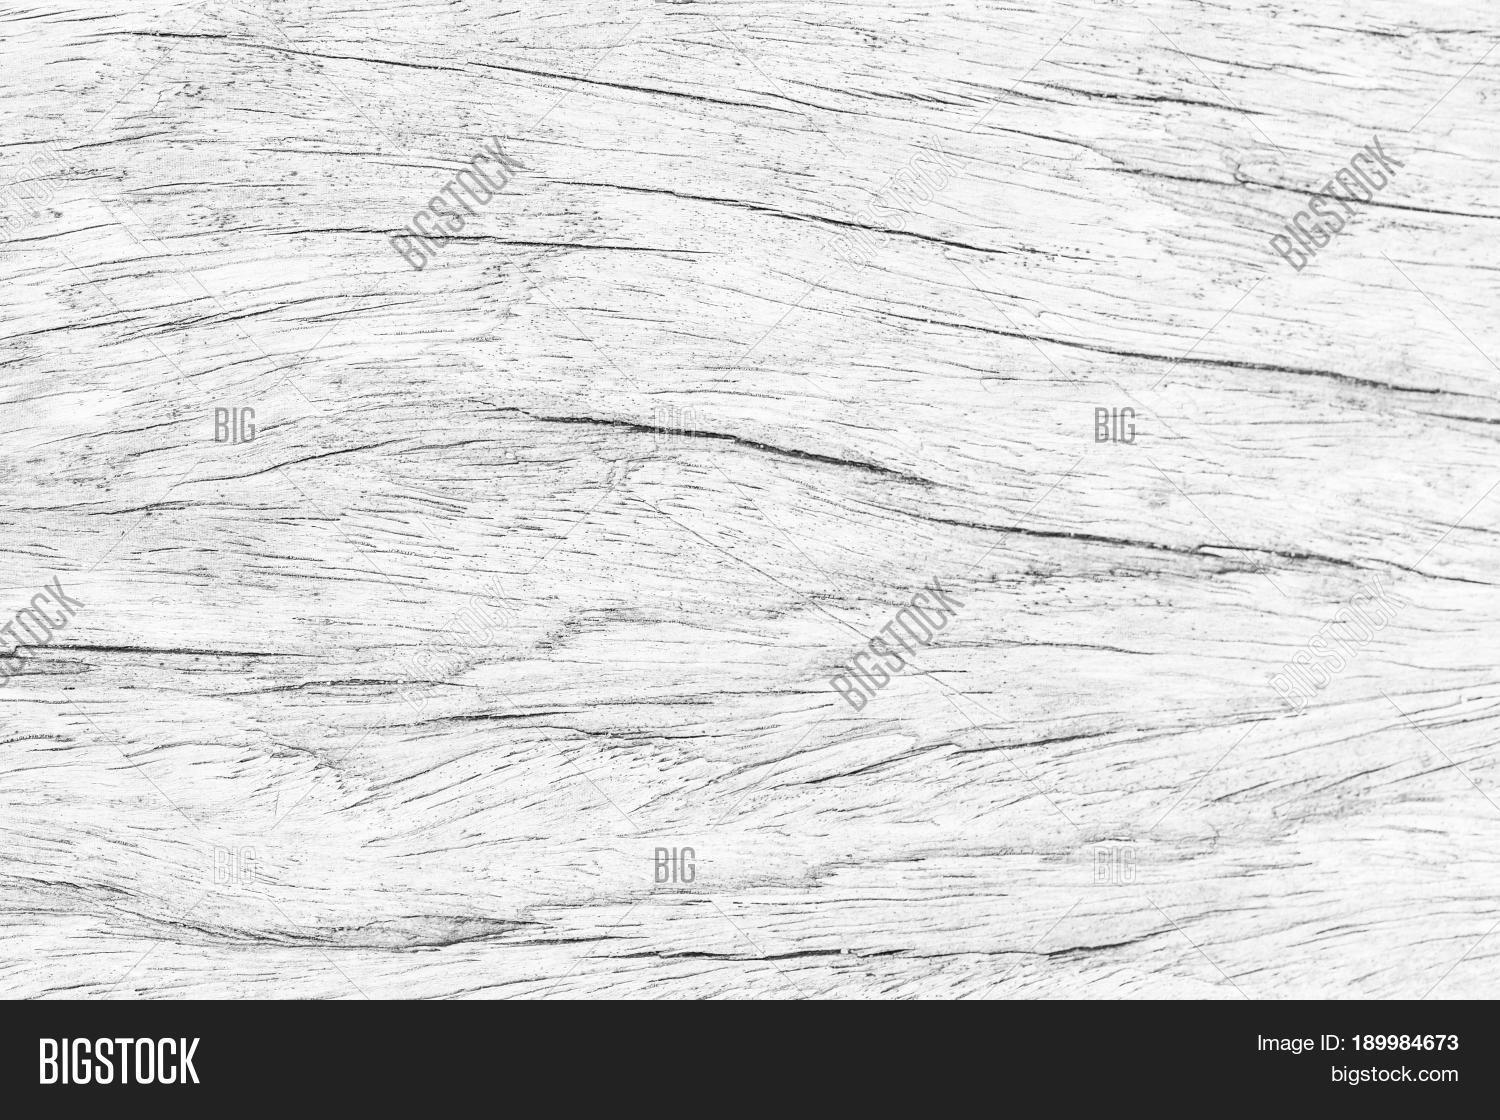 White wood table texture - Abstract Surface White Wood Table Texture Background Close Up Of Dark Rustic Wall Made Of